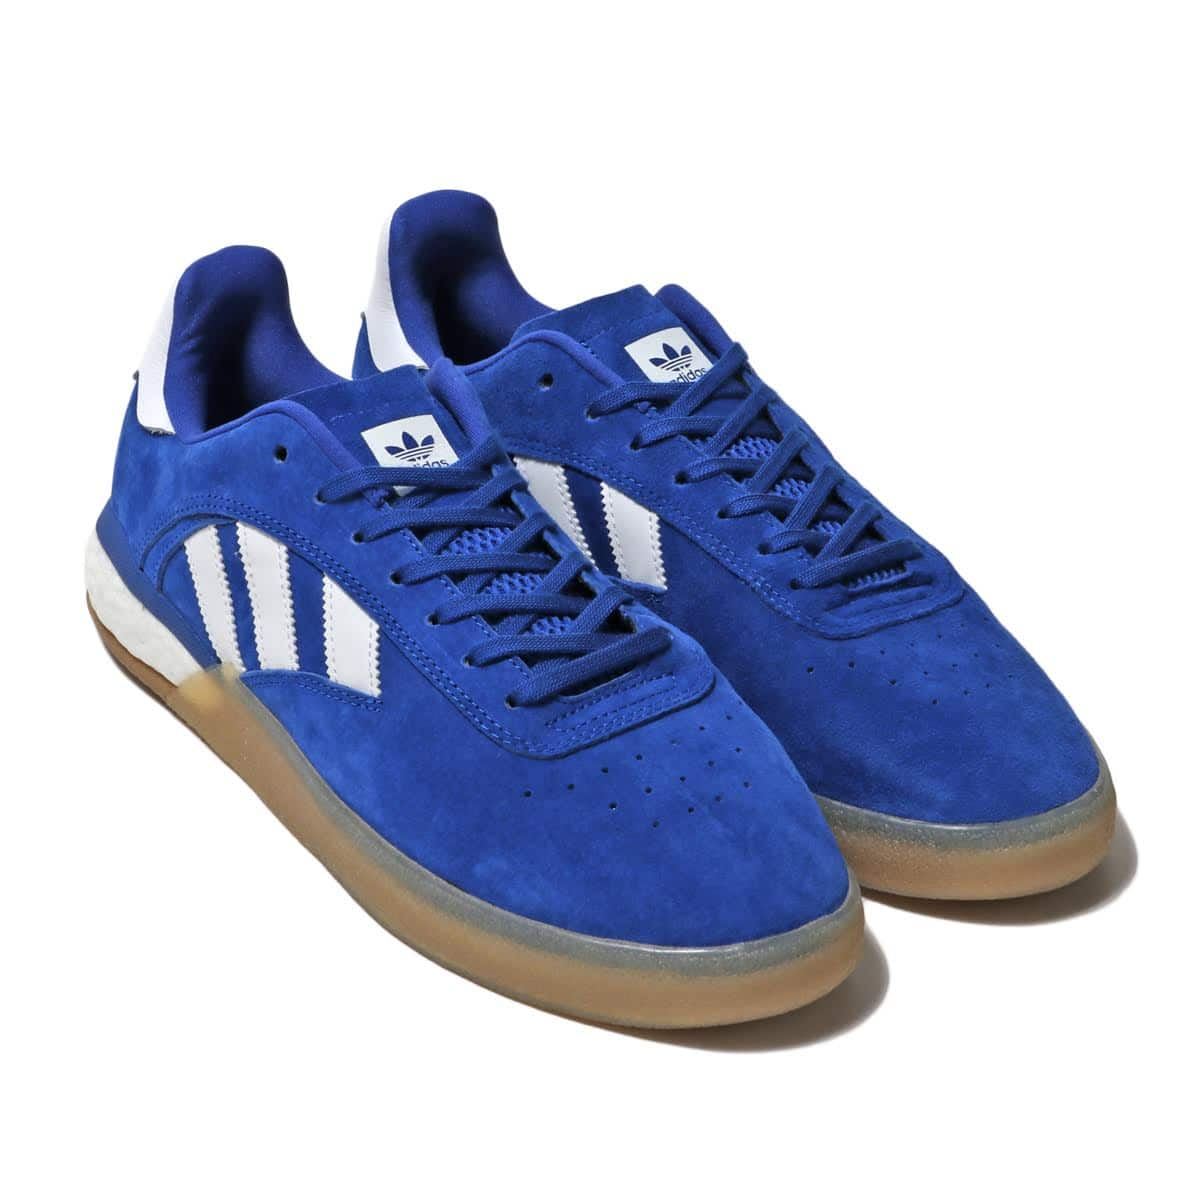 adidas Originals 3ST.004 COLLEGE ROYAL/RUNNING WHITE/ANTIQUE SILVER 19SS-I_photo_large